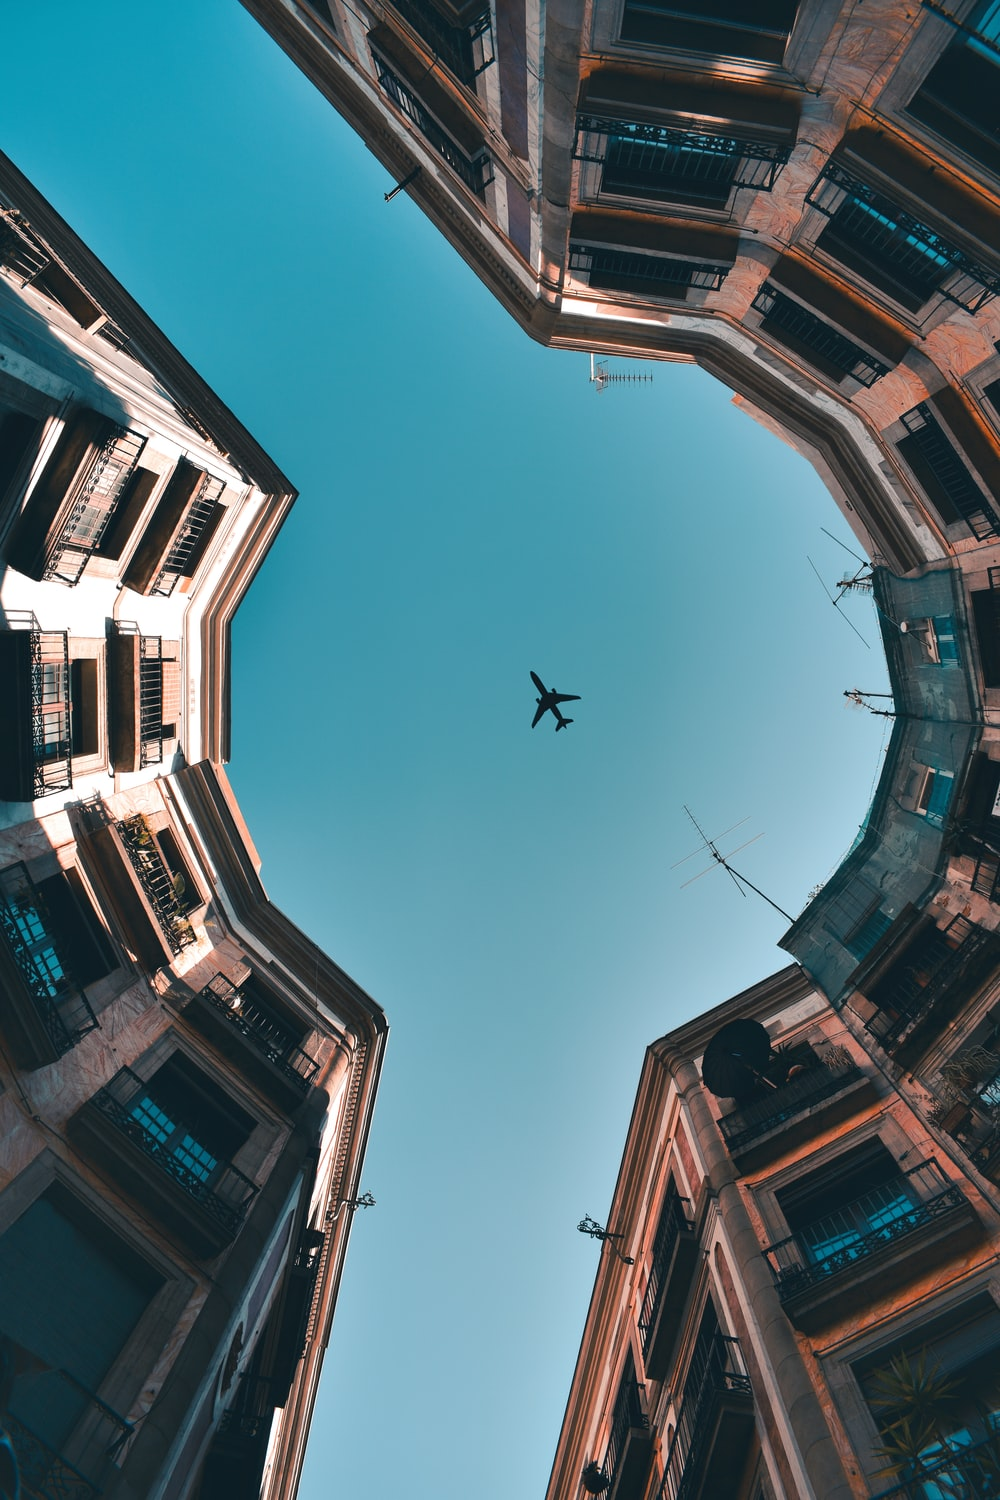 worm's eye view of brown buildings and an airplane in flight